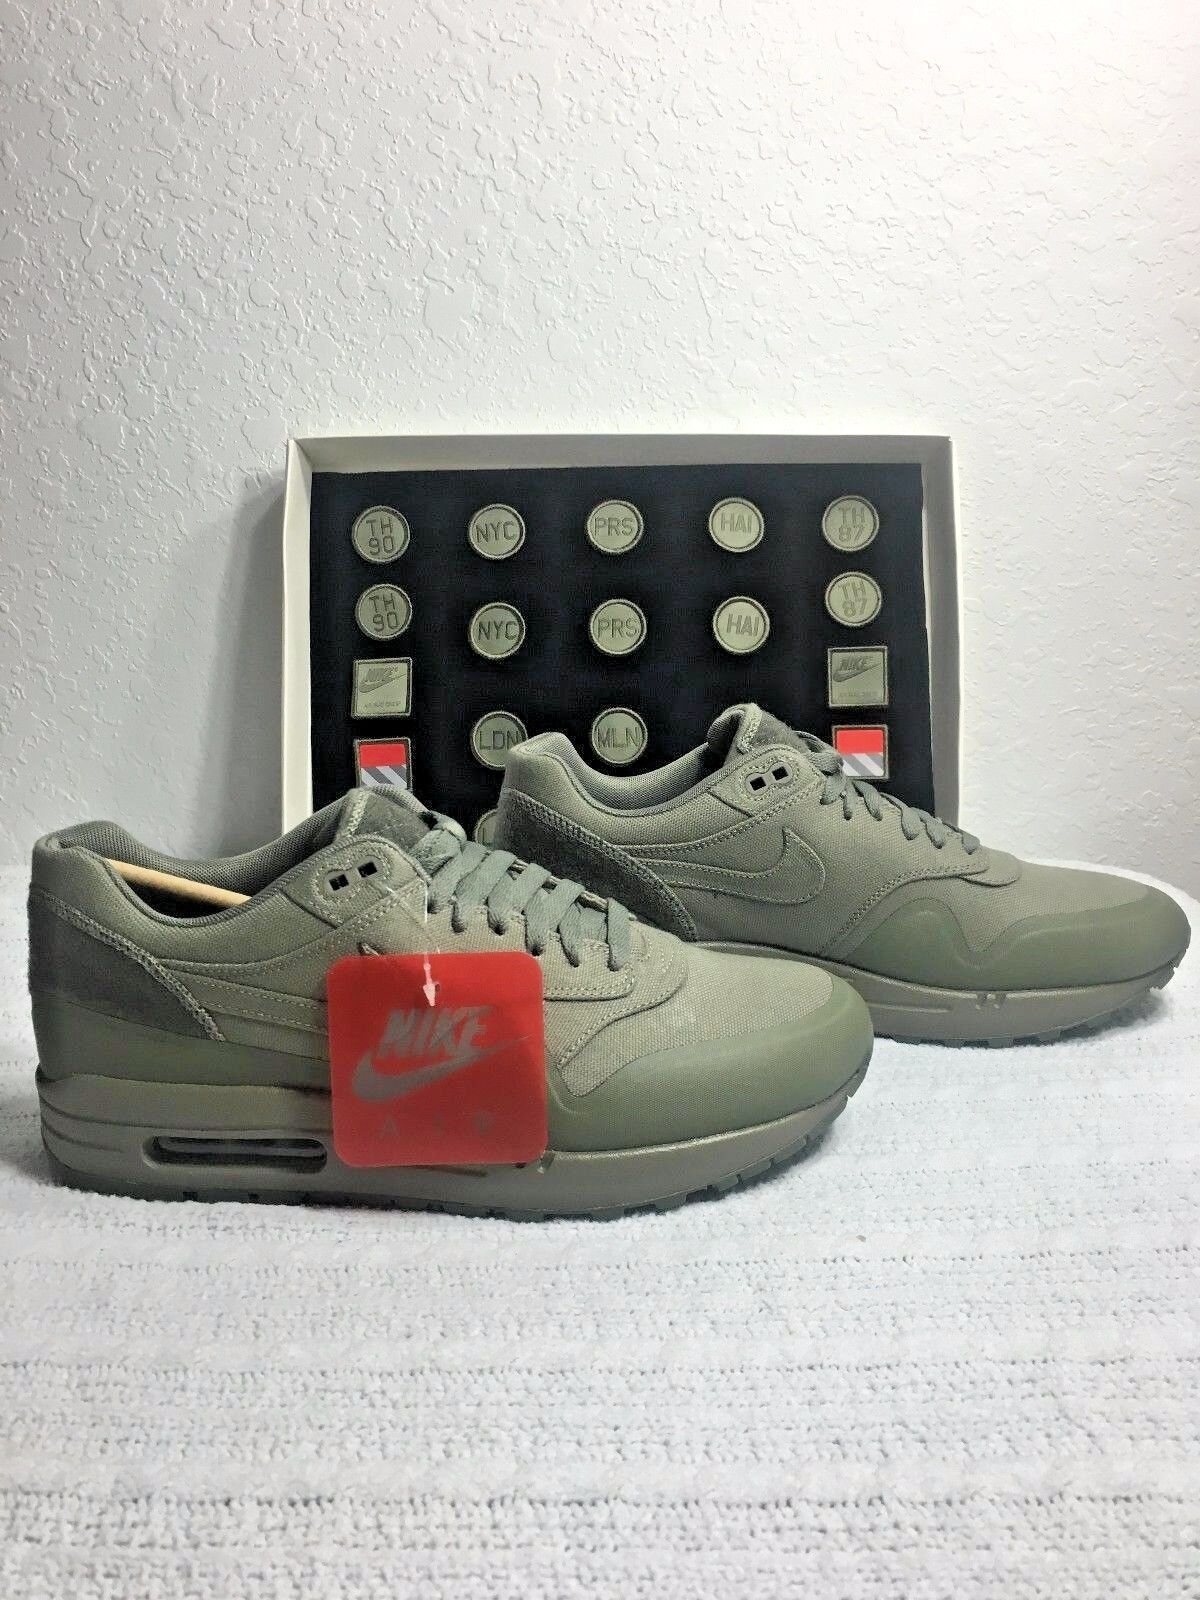 NIKE AIR MAX 1 V SP PATCH STEEL GREEN MEN SIZE 6 WOMENS SIZE 7.5 NEW 704901 300